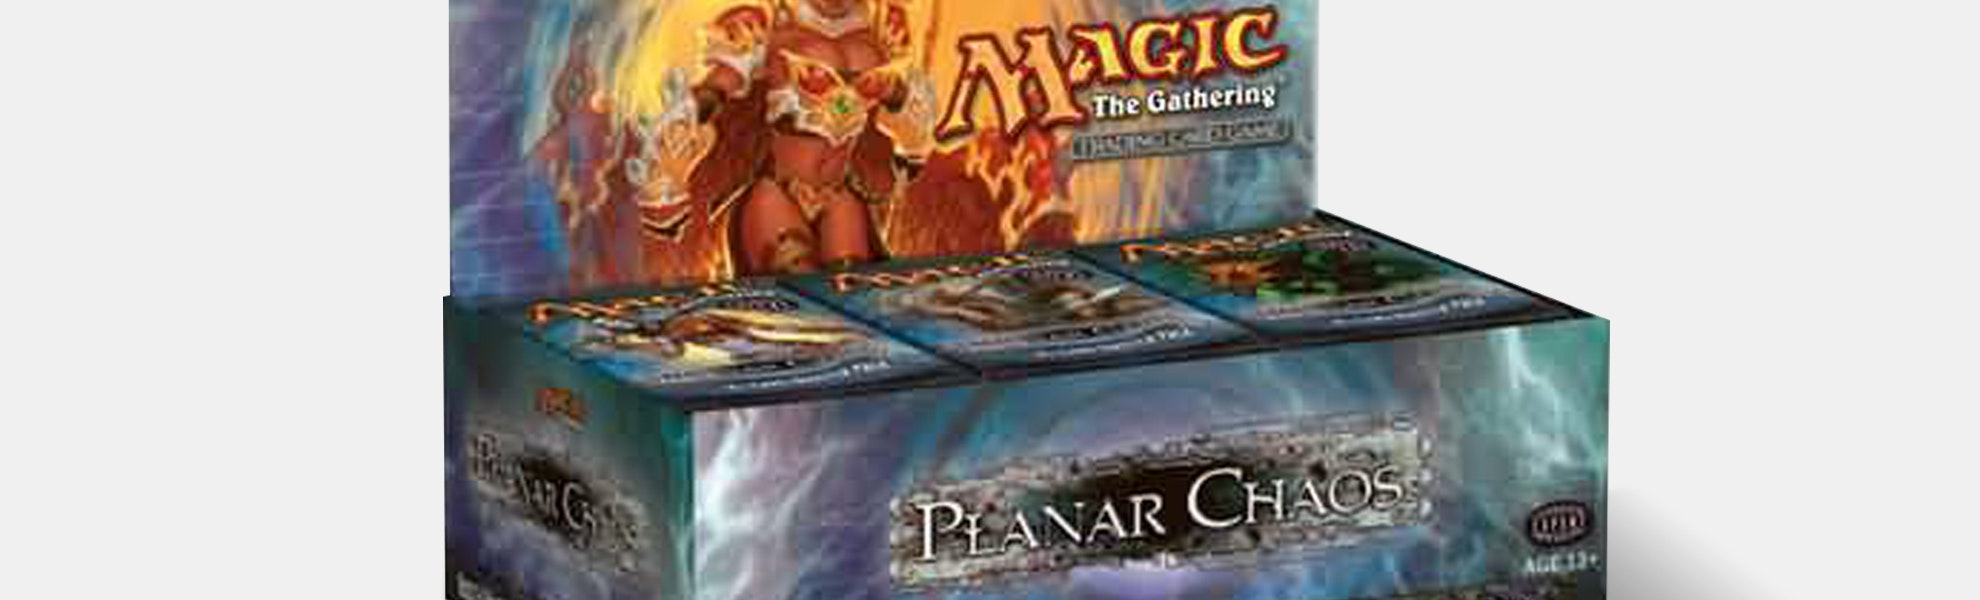 Planar Chaos Booster Box